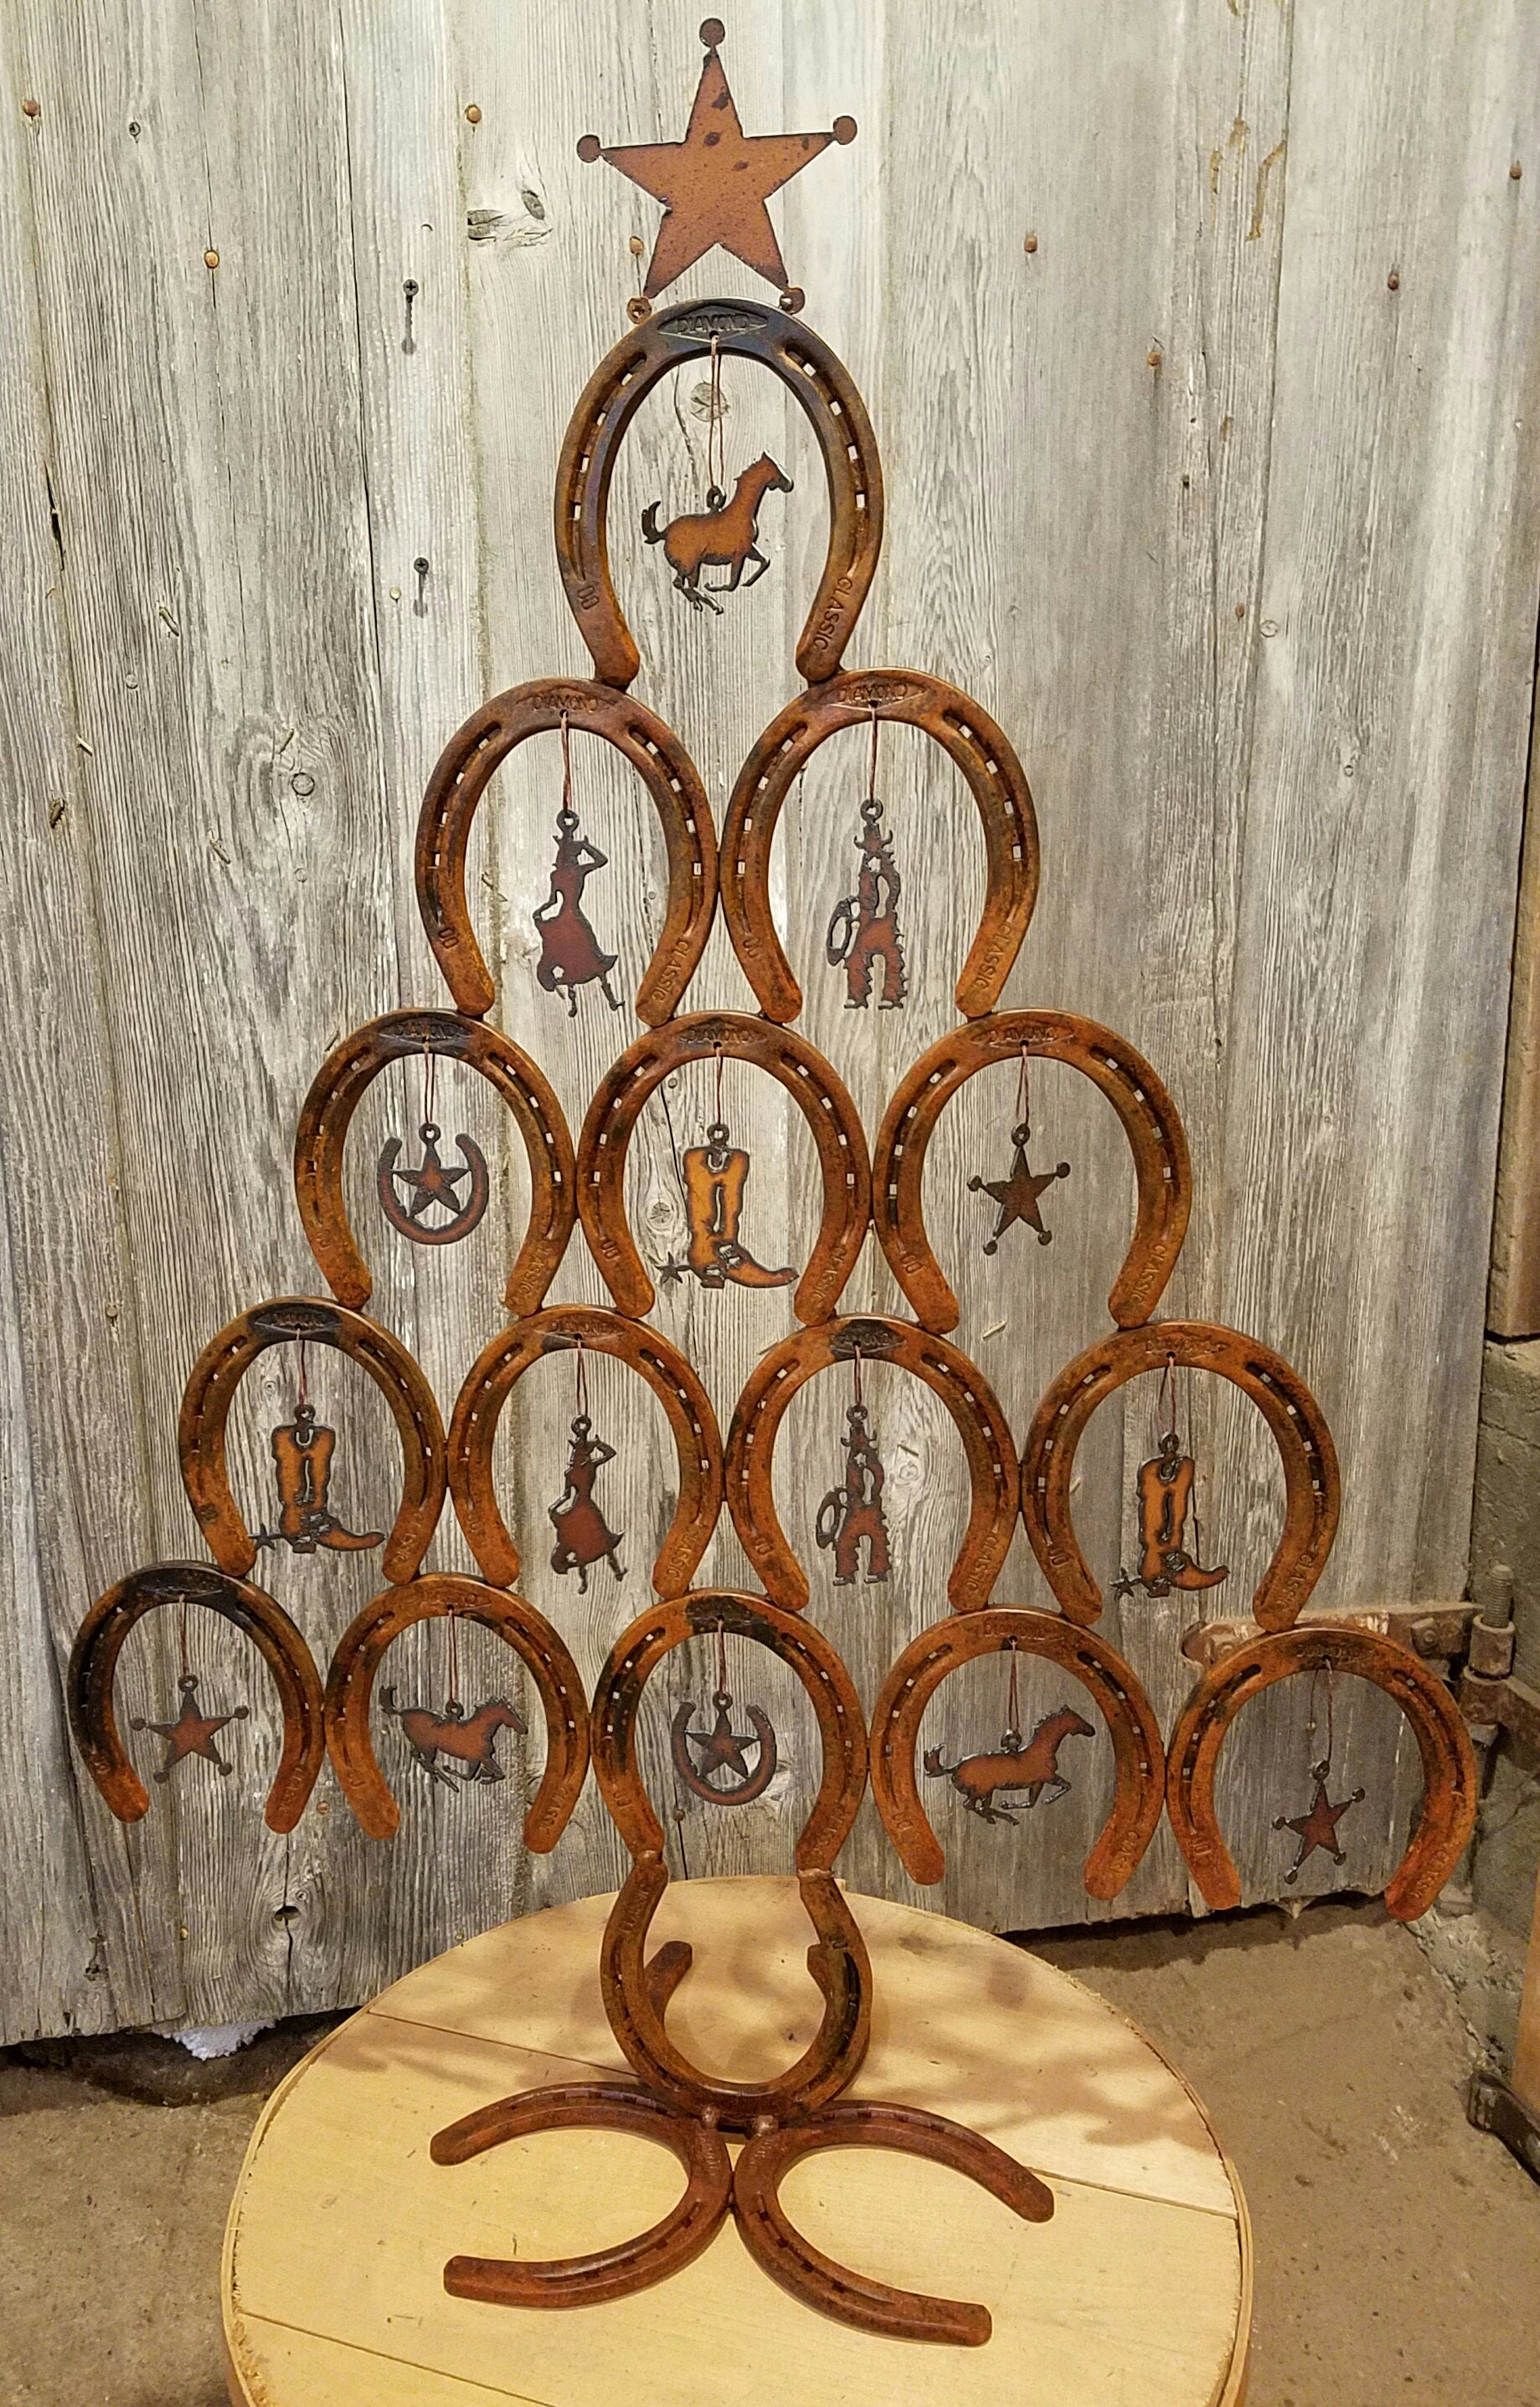 Rustic Horseshoe Christmas Tree WITH ornaments Rustic | Etsy